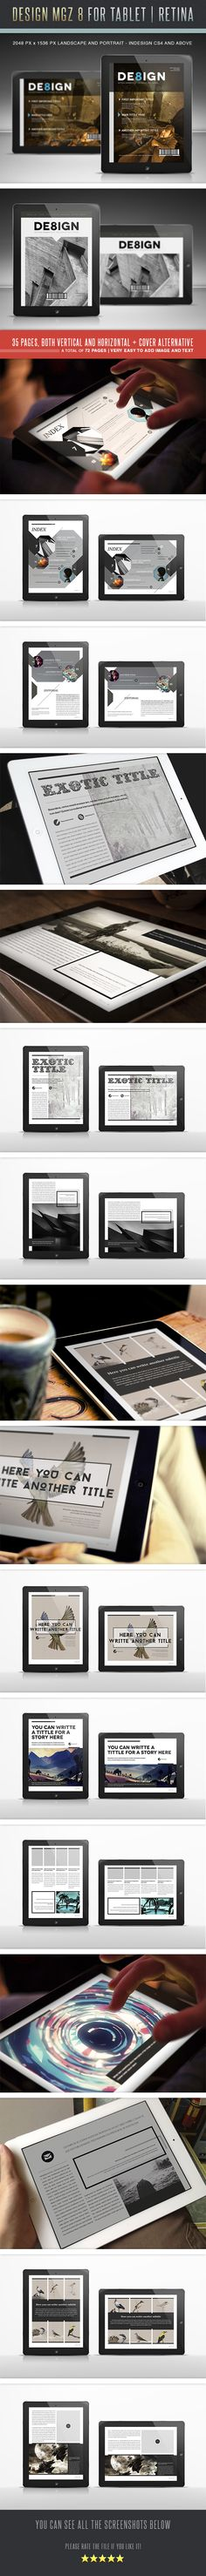 Design MGZ 8 for Tablet by Lucas Iacono, via Behance Download from: http://graphicriver.net/item/design-mgz-8-for-tablet/5383869?ref=luuqas